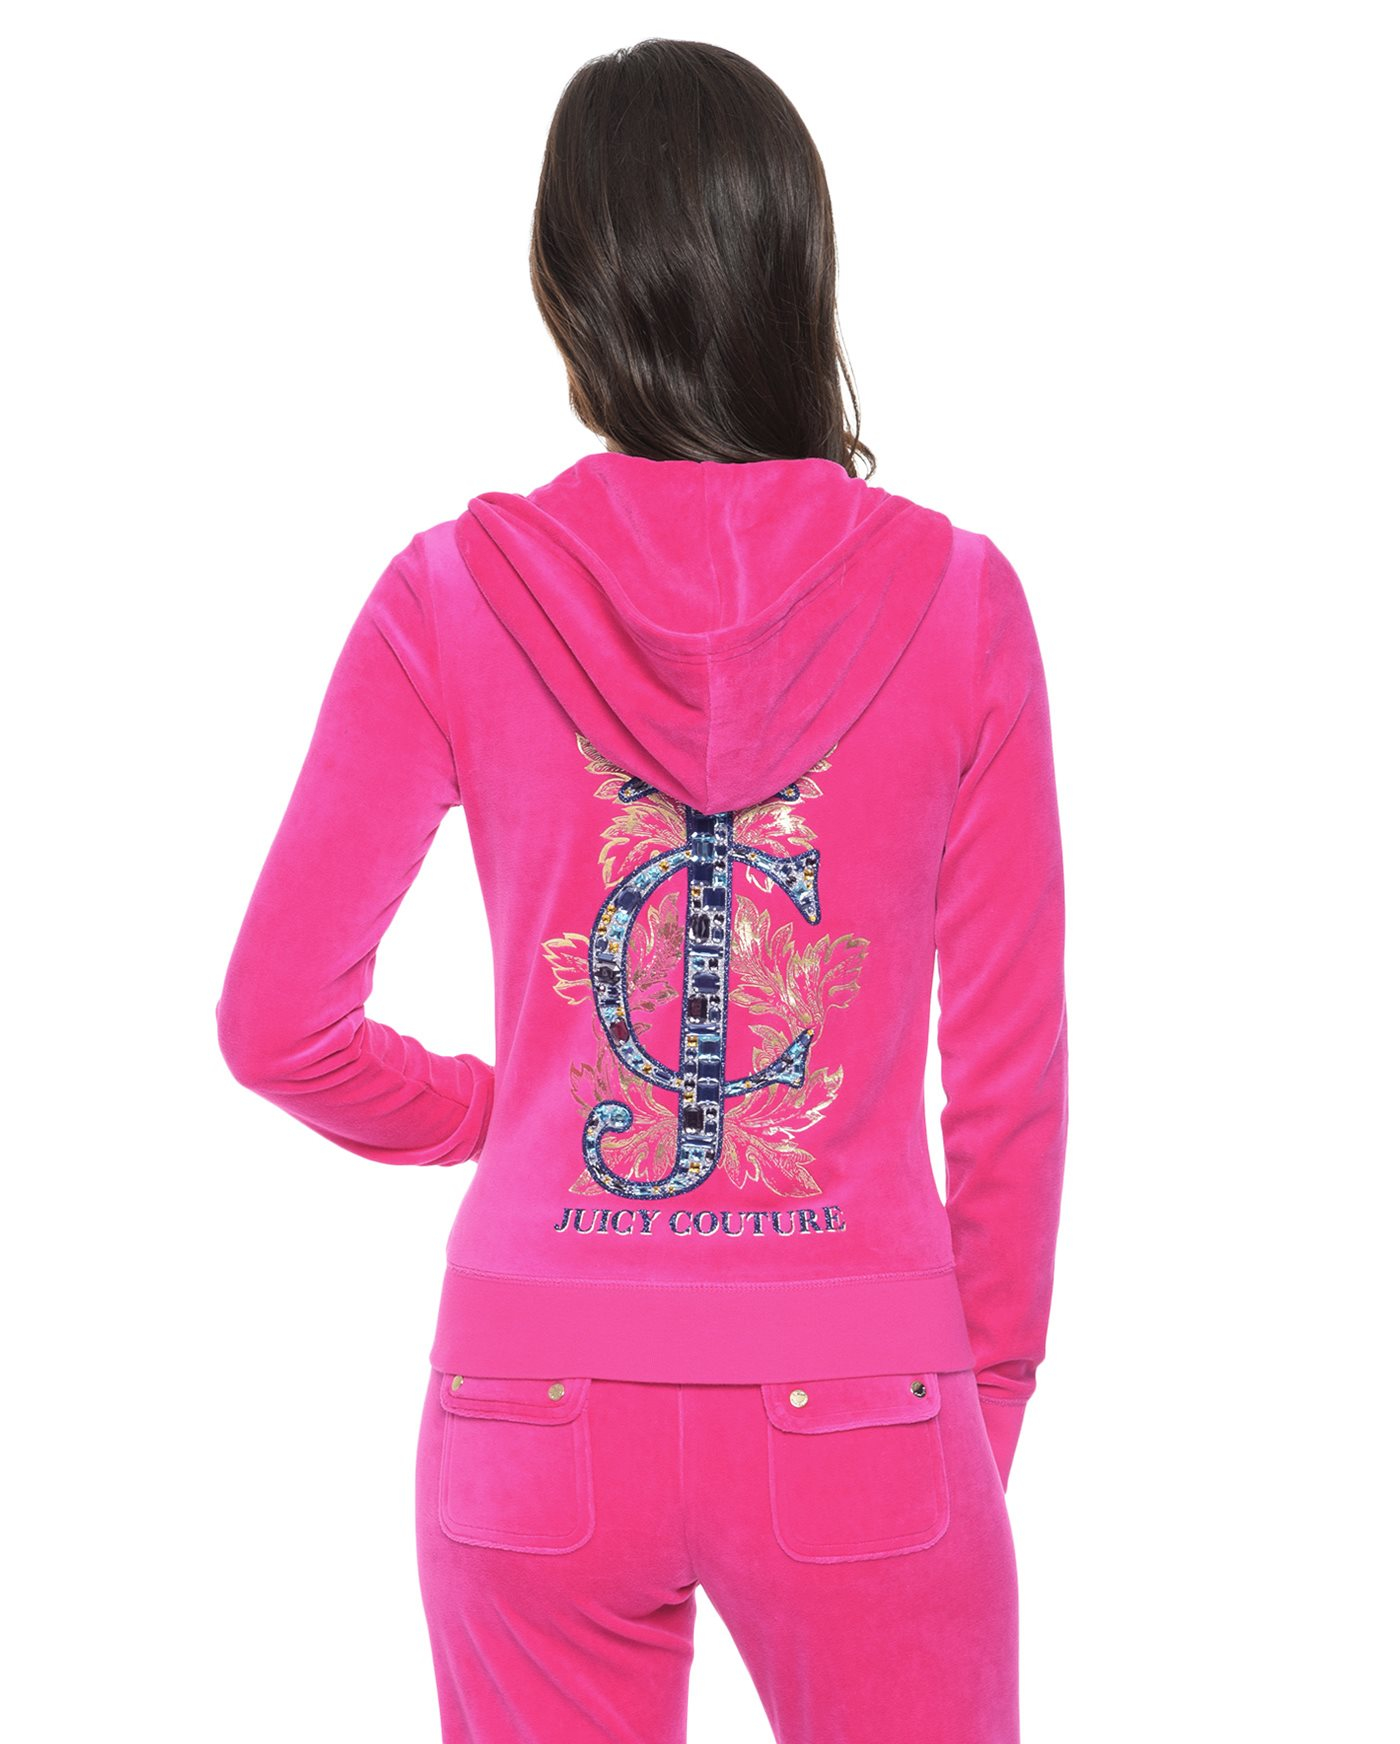 juicy couture logo jc jewels velour original jacket in